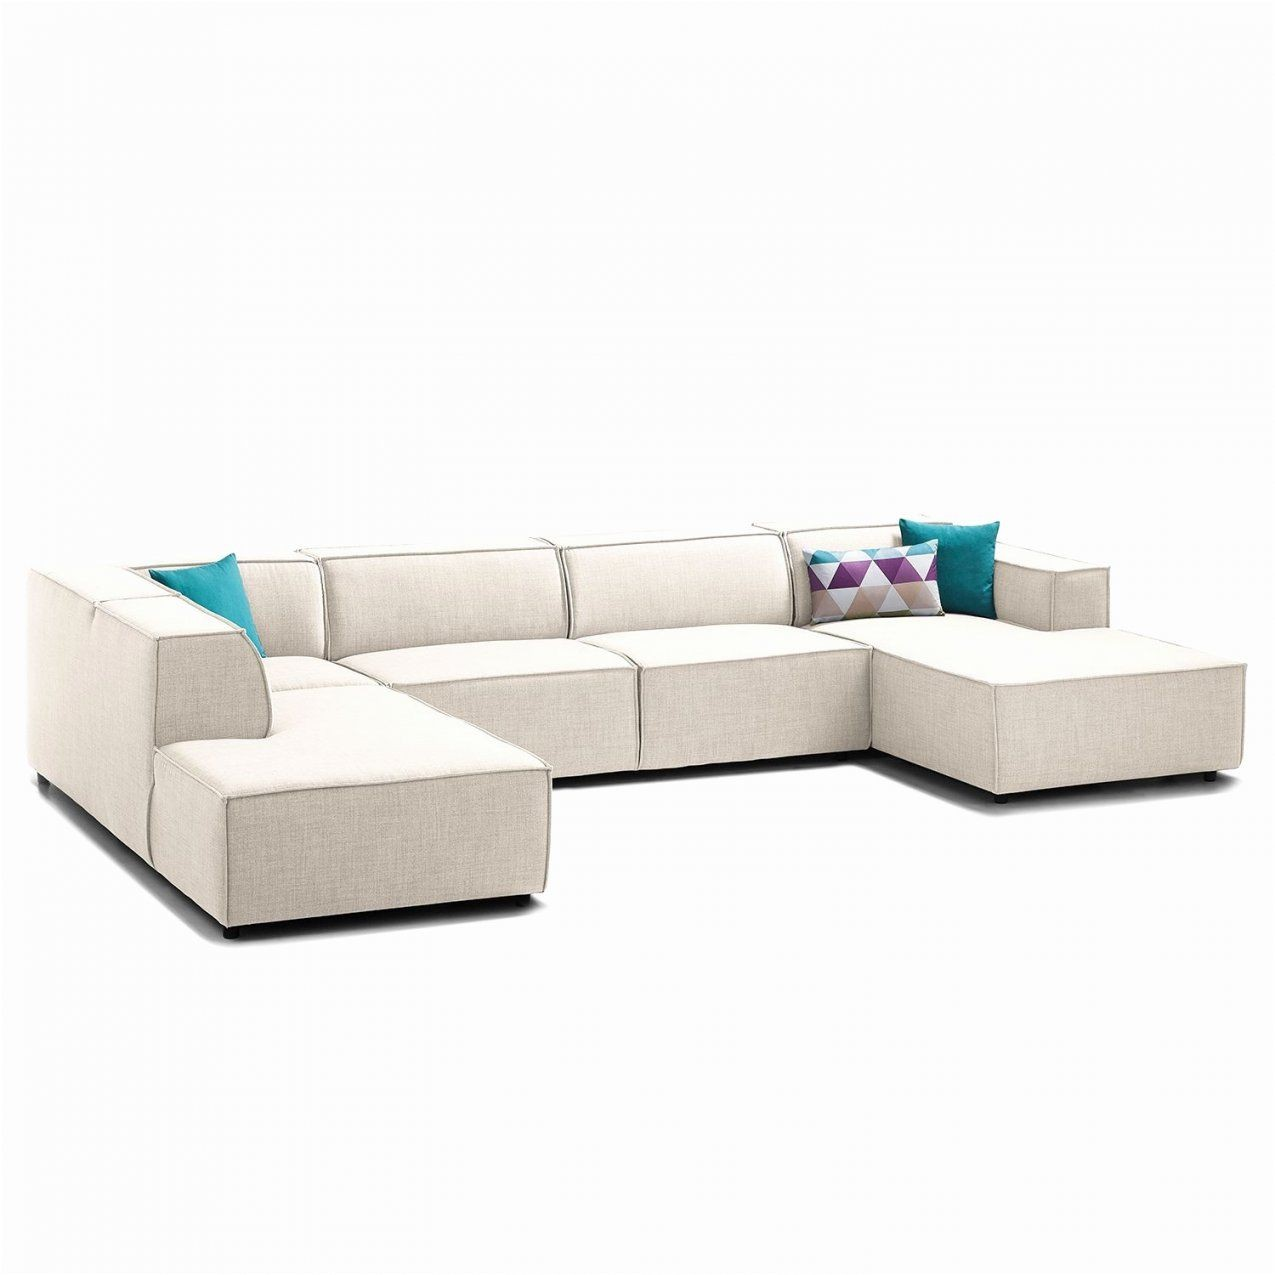 hussen ecksofa ottomane links cool excellent good situmore ecksofa von husse ecksofa ottomane. Black Bedroom Furniture Sets. Home Design Ideas